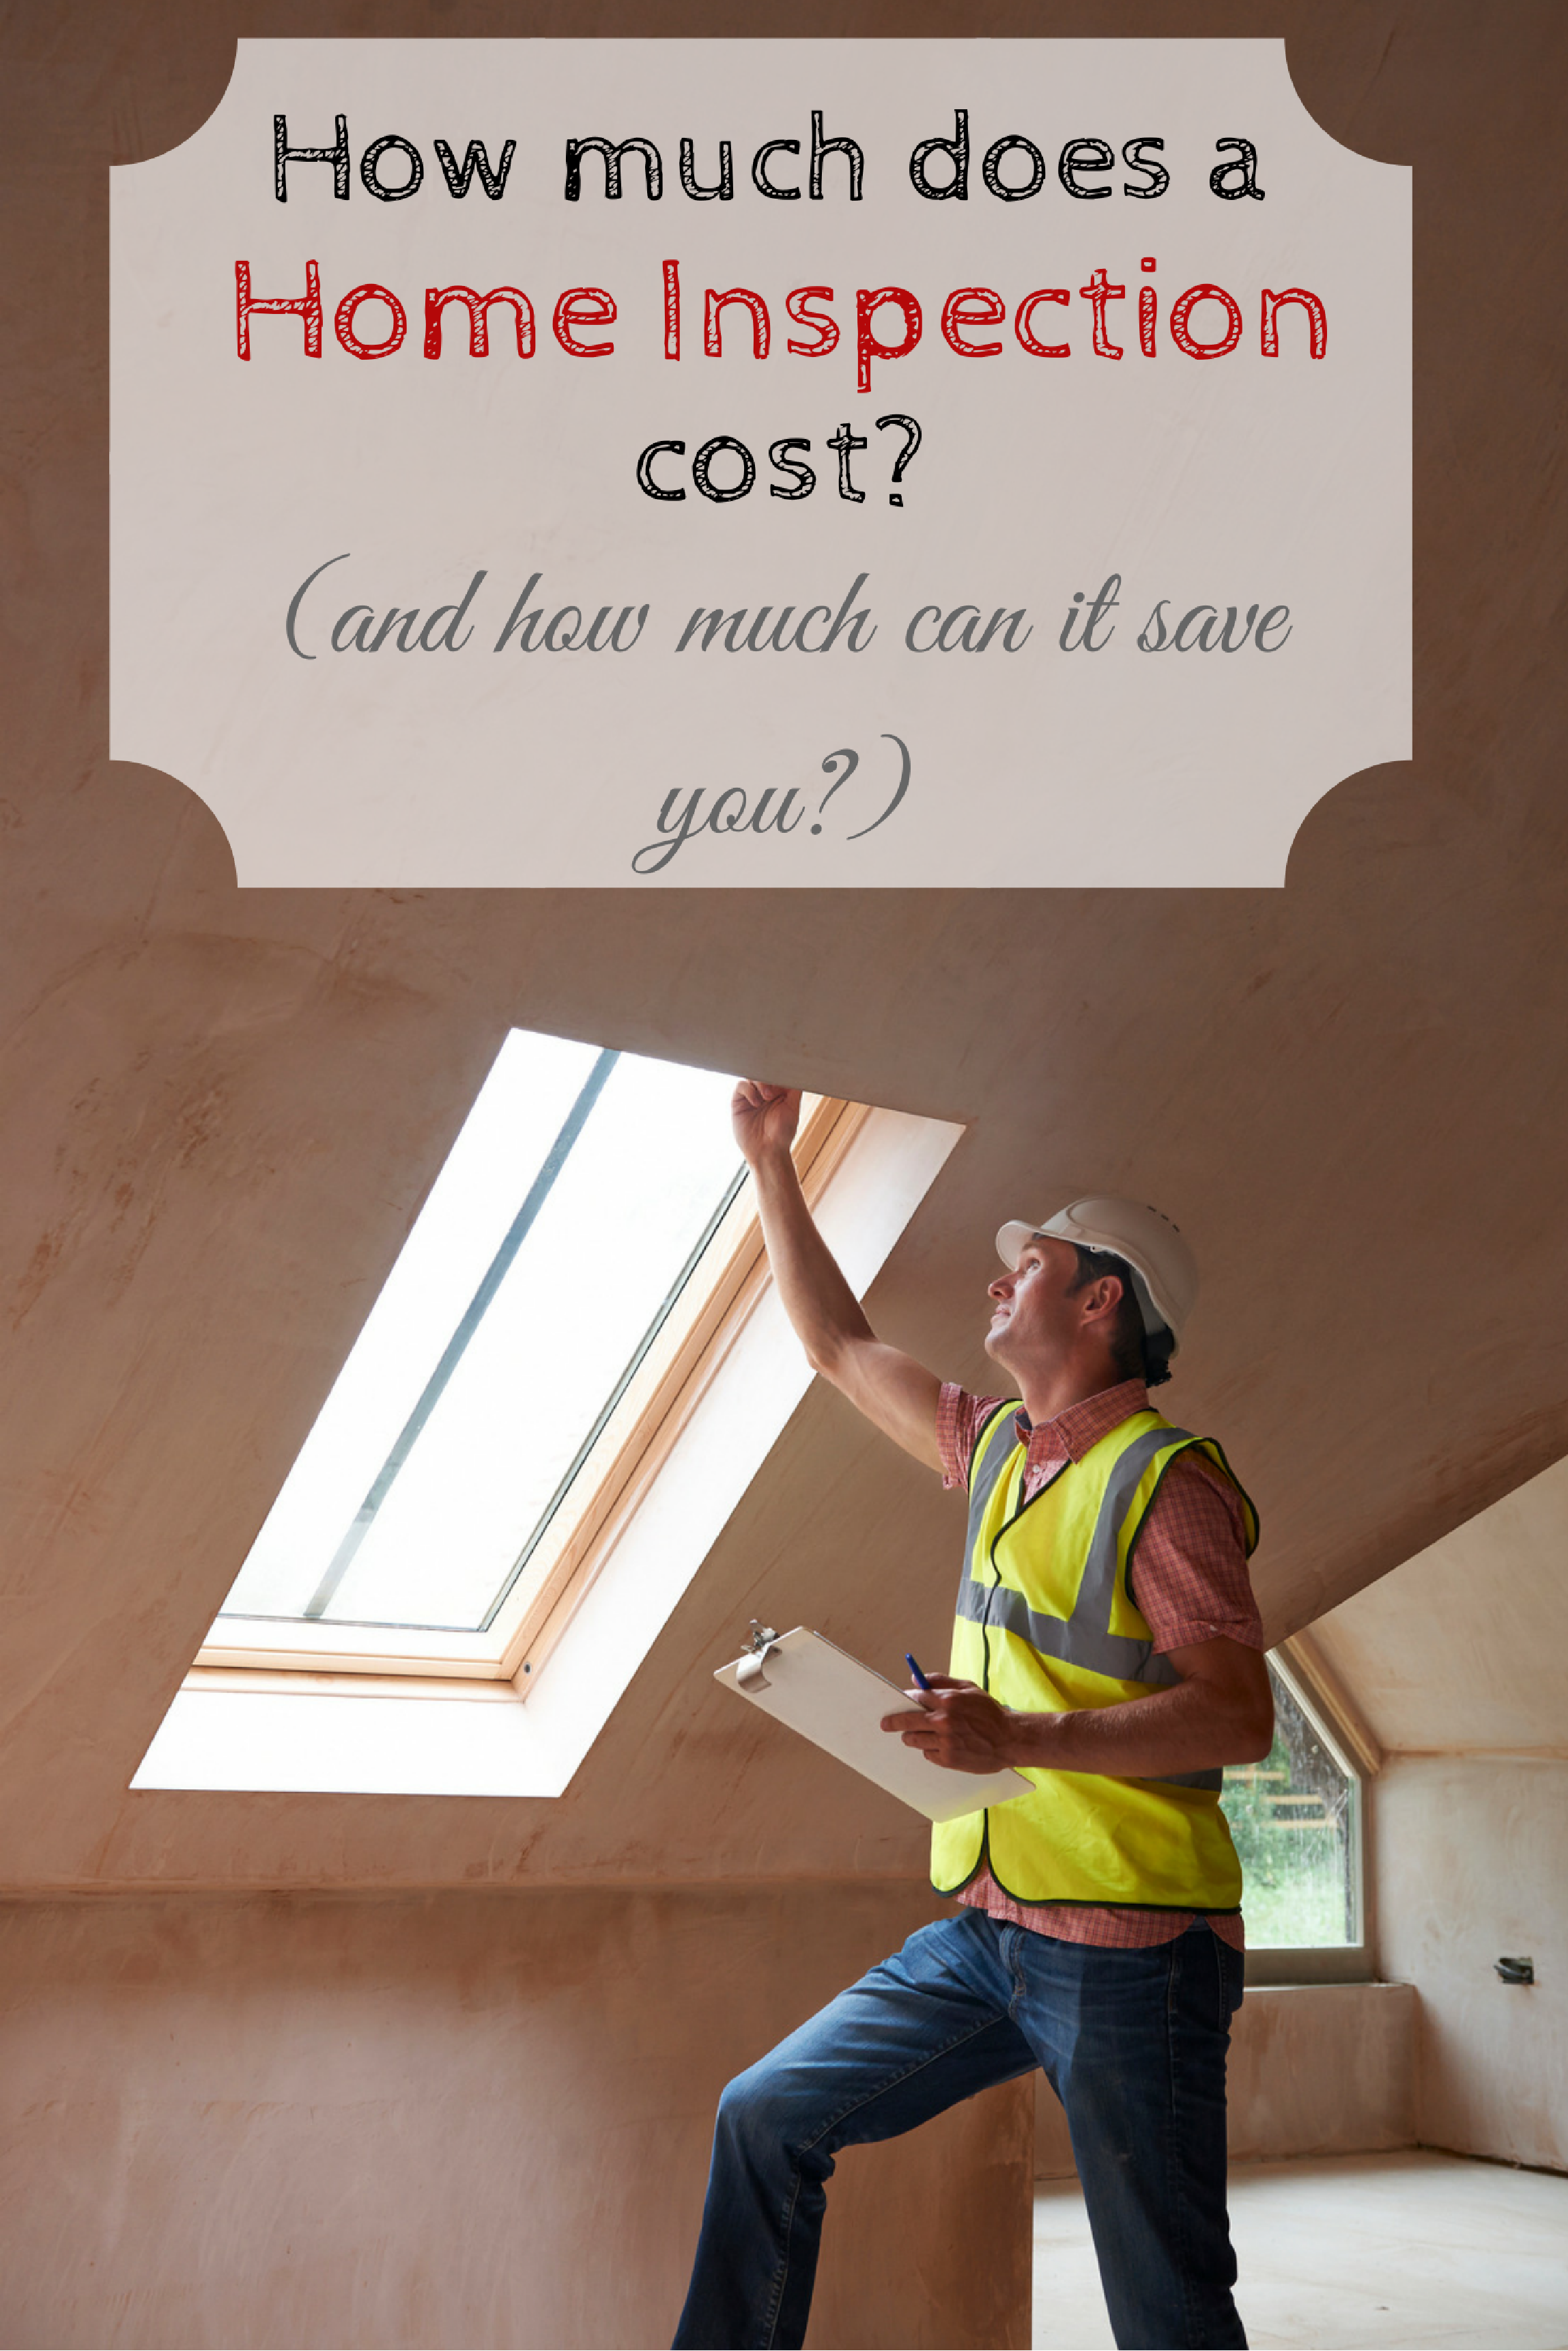 How Much Does A Home Inspection Cost? (With Images)